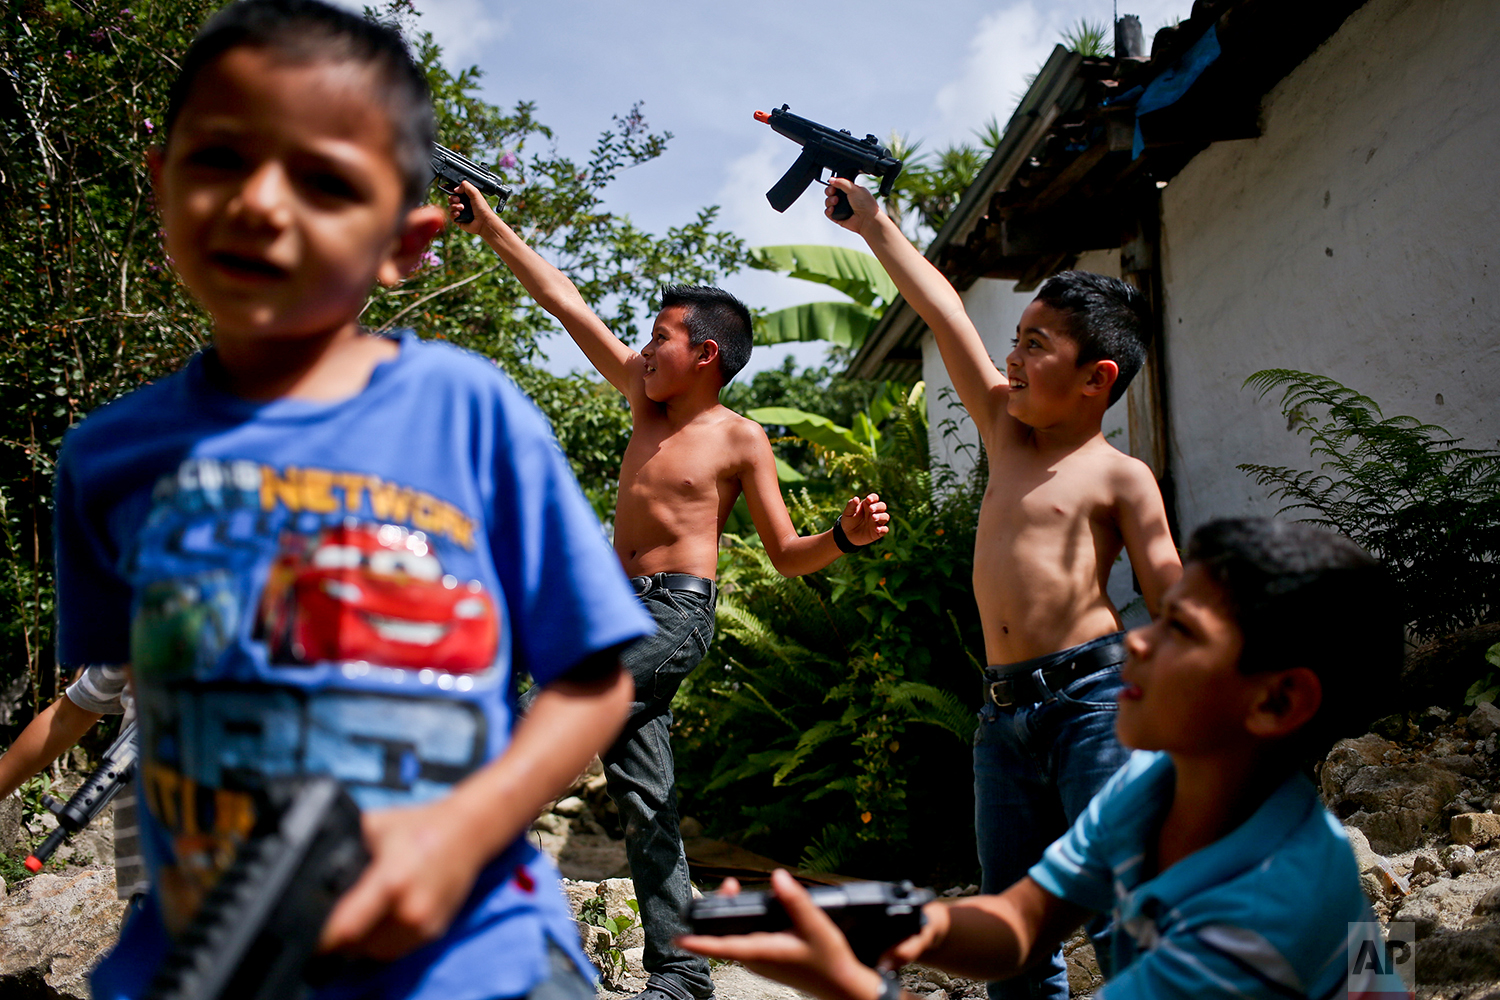 """In this July 22, 2018 photo, brothers and cousins pretend to shoot little girls watching them from a window, as they play cops and gangsters with toy guns that were a gift from an uncle, in Taulabe, Honduras. When asked if they were cops or gangsters, they paused to think about it and answered """"cops."""" (AP Photo/Esteban Felix)"""